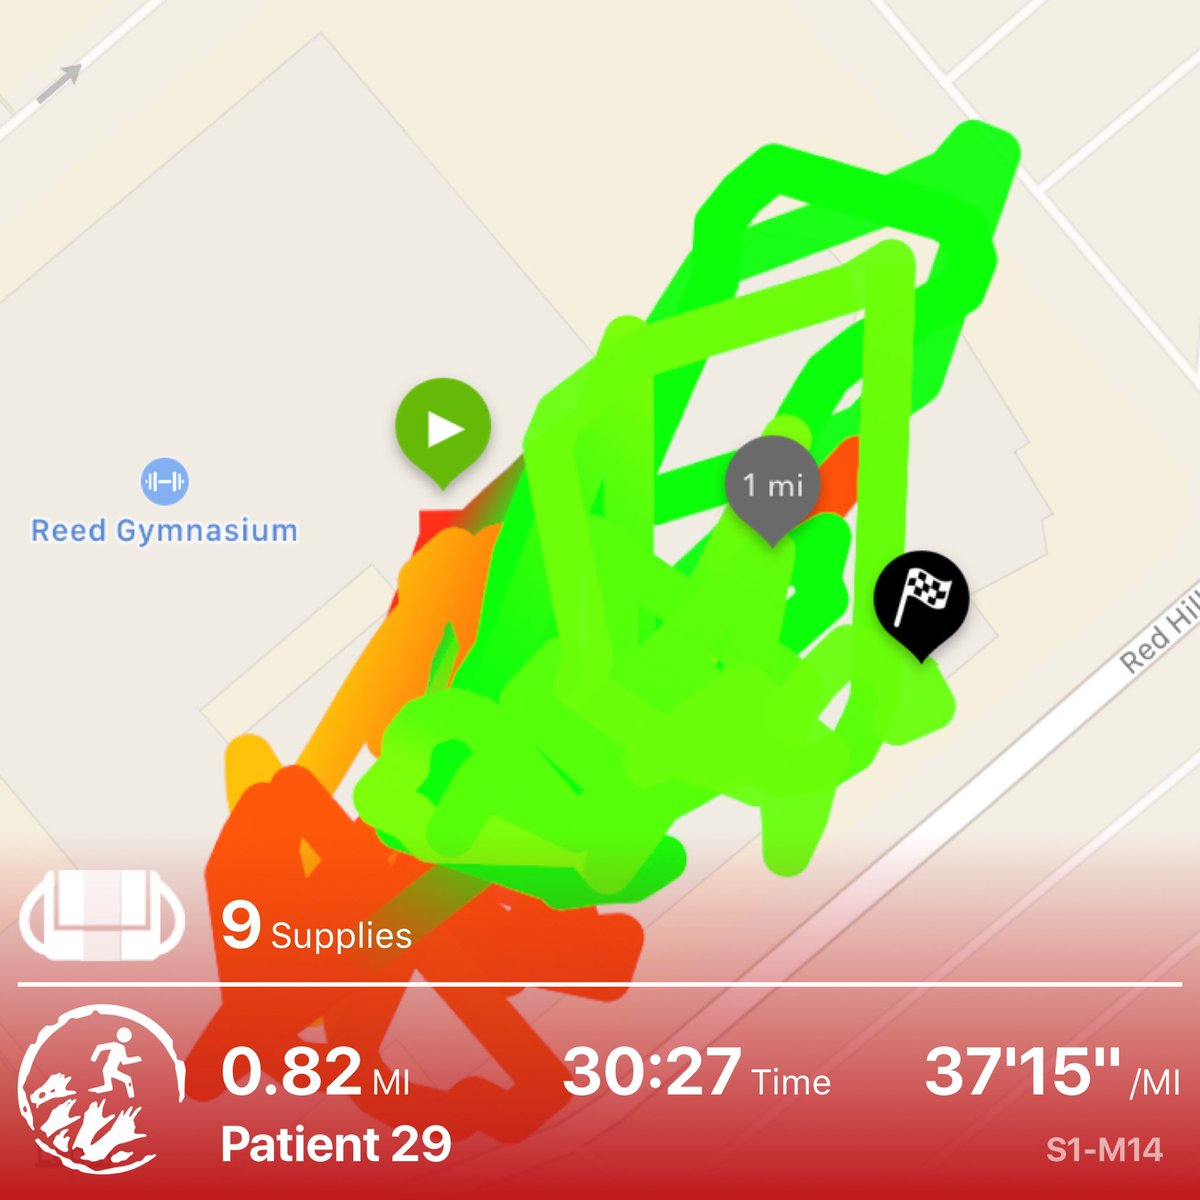 That pace is a lie. I was inside and it blocked my GPS. I did 30/60s today. Discovered evidence about the zombie plague outbreak - and much more... #zombiesrun <br>http://pic.twitter.com/eMHCk8eblL